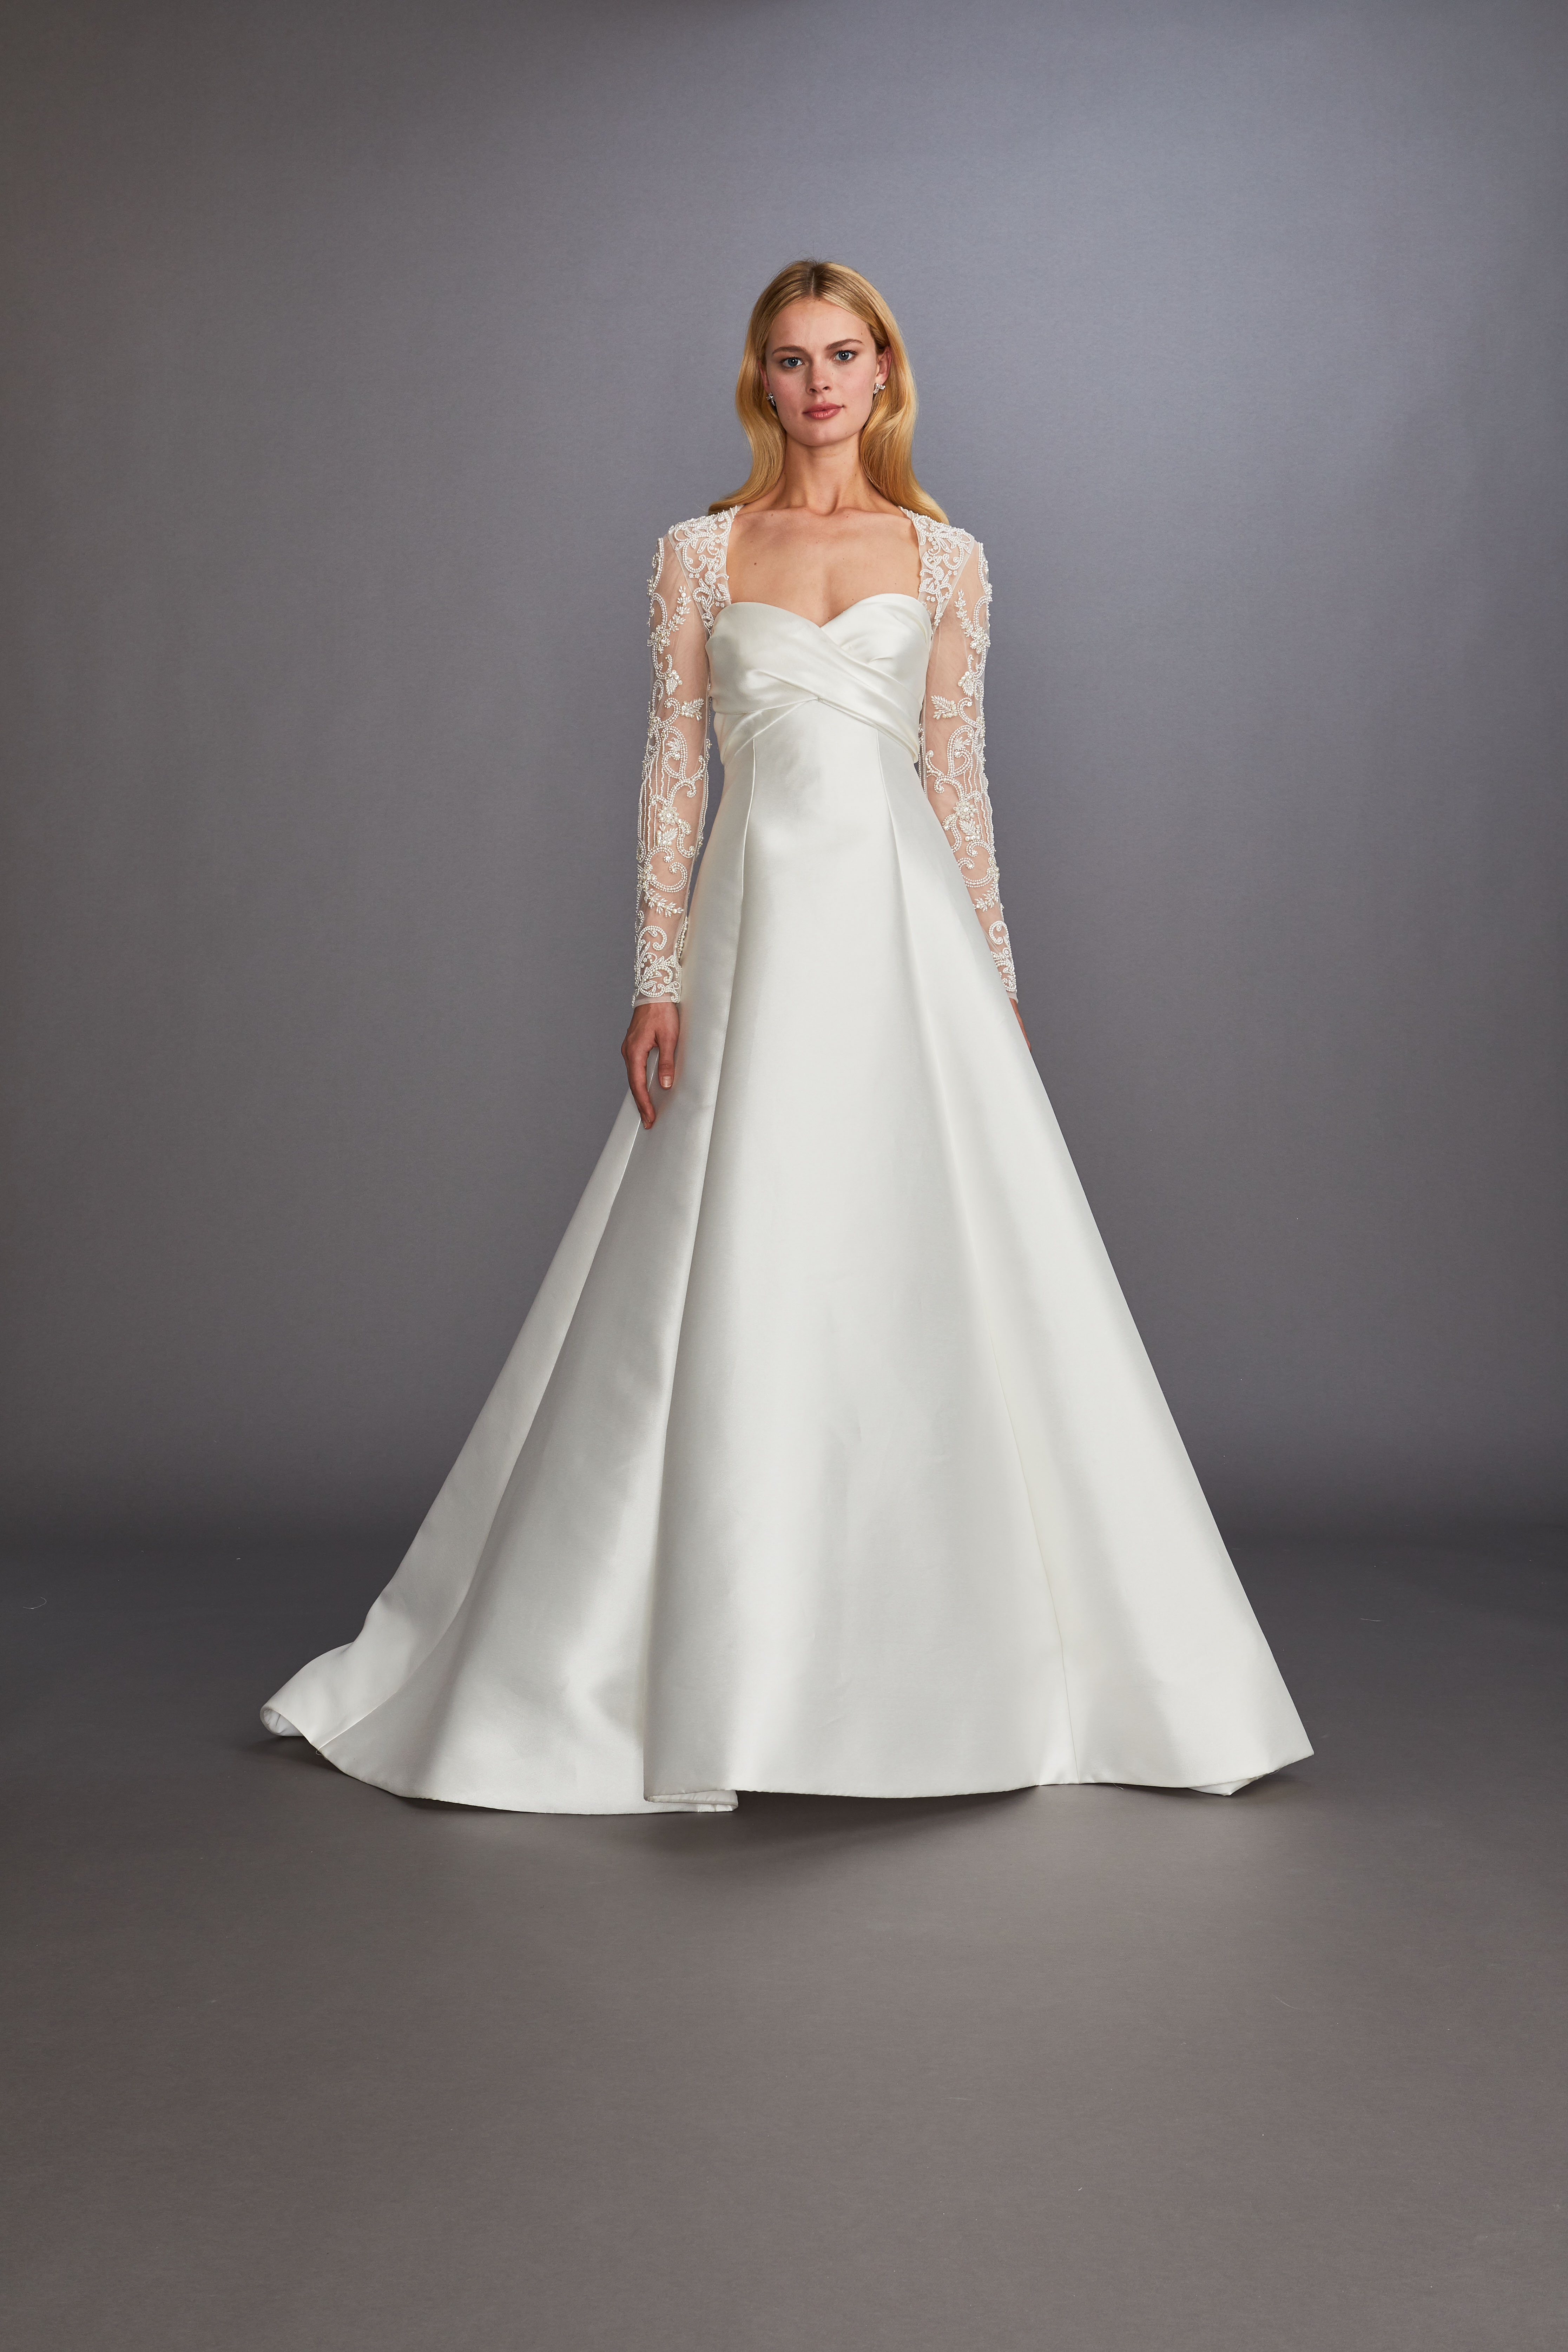 square sweetheart neckline lace long sleeves ruching bodice a-line wedding dress Allison Webb Spring 2020